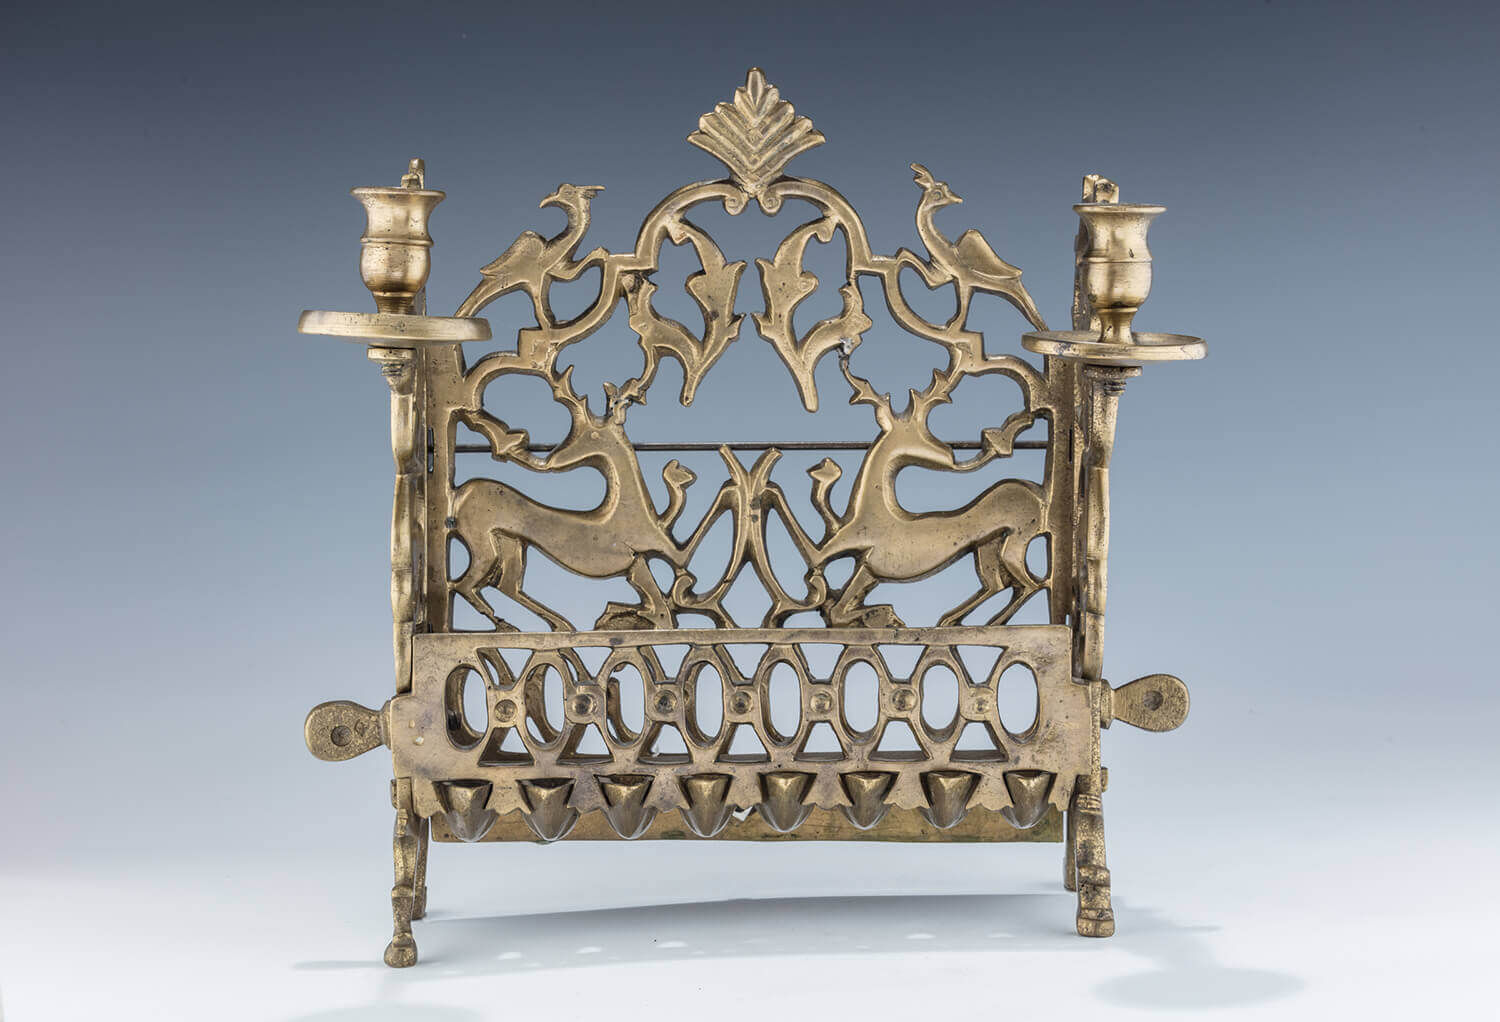 063. A LARGE BRASS HANUKKAH LAMP